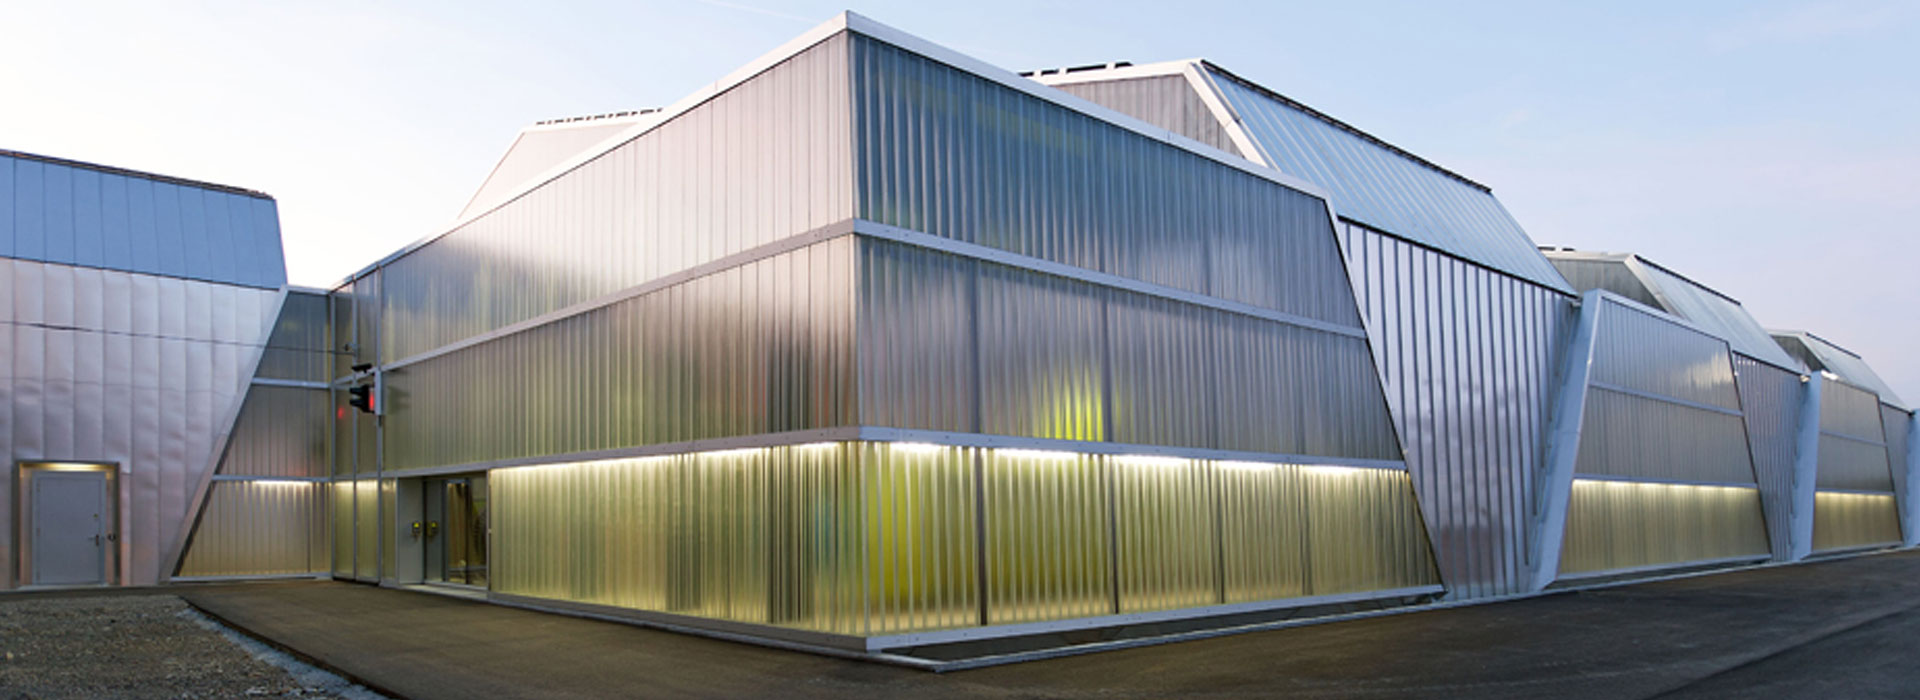 Architectural Glass Metal Facades Polycarbonate System